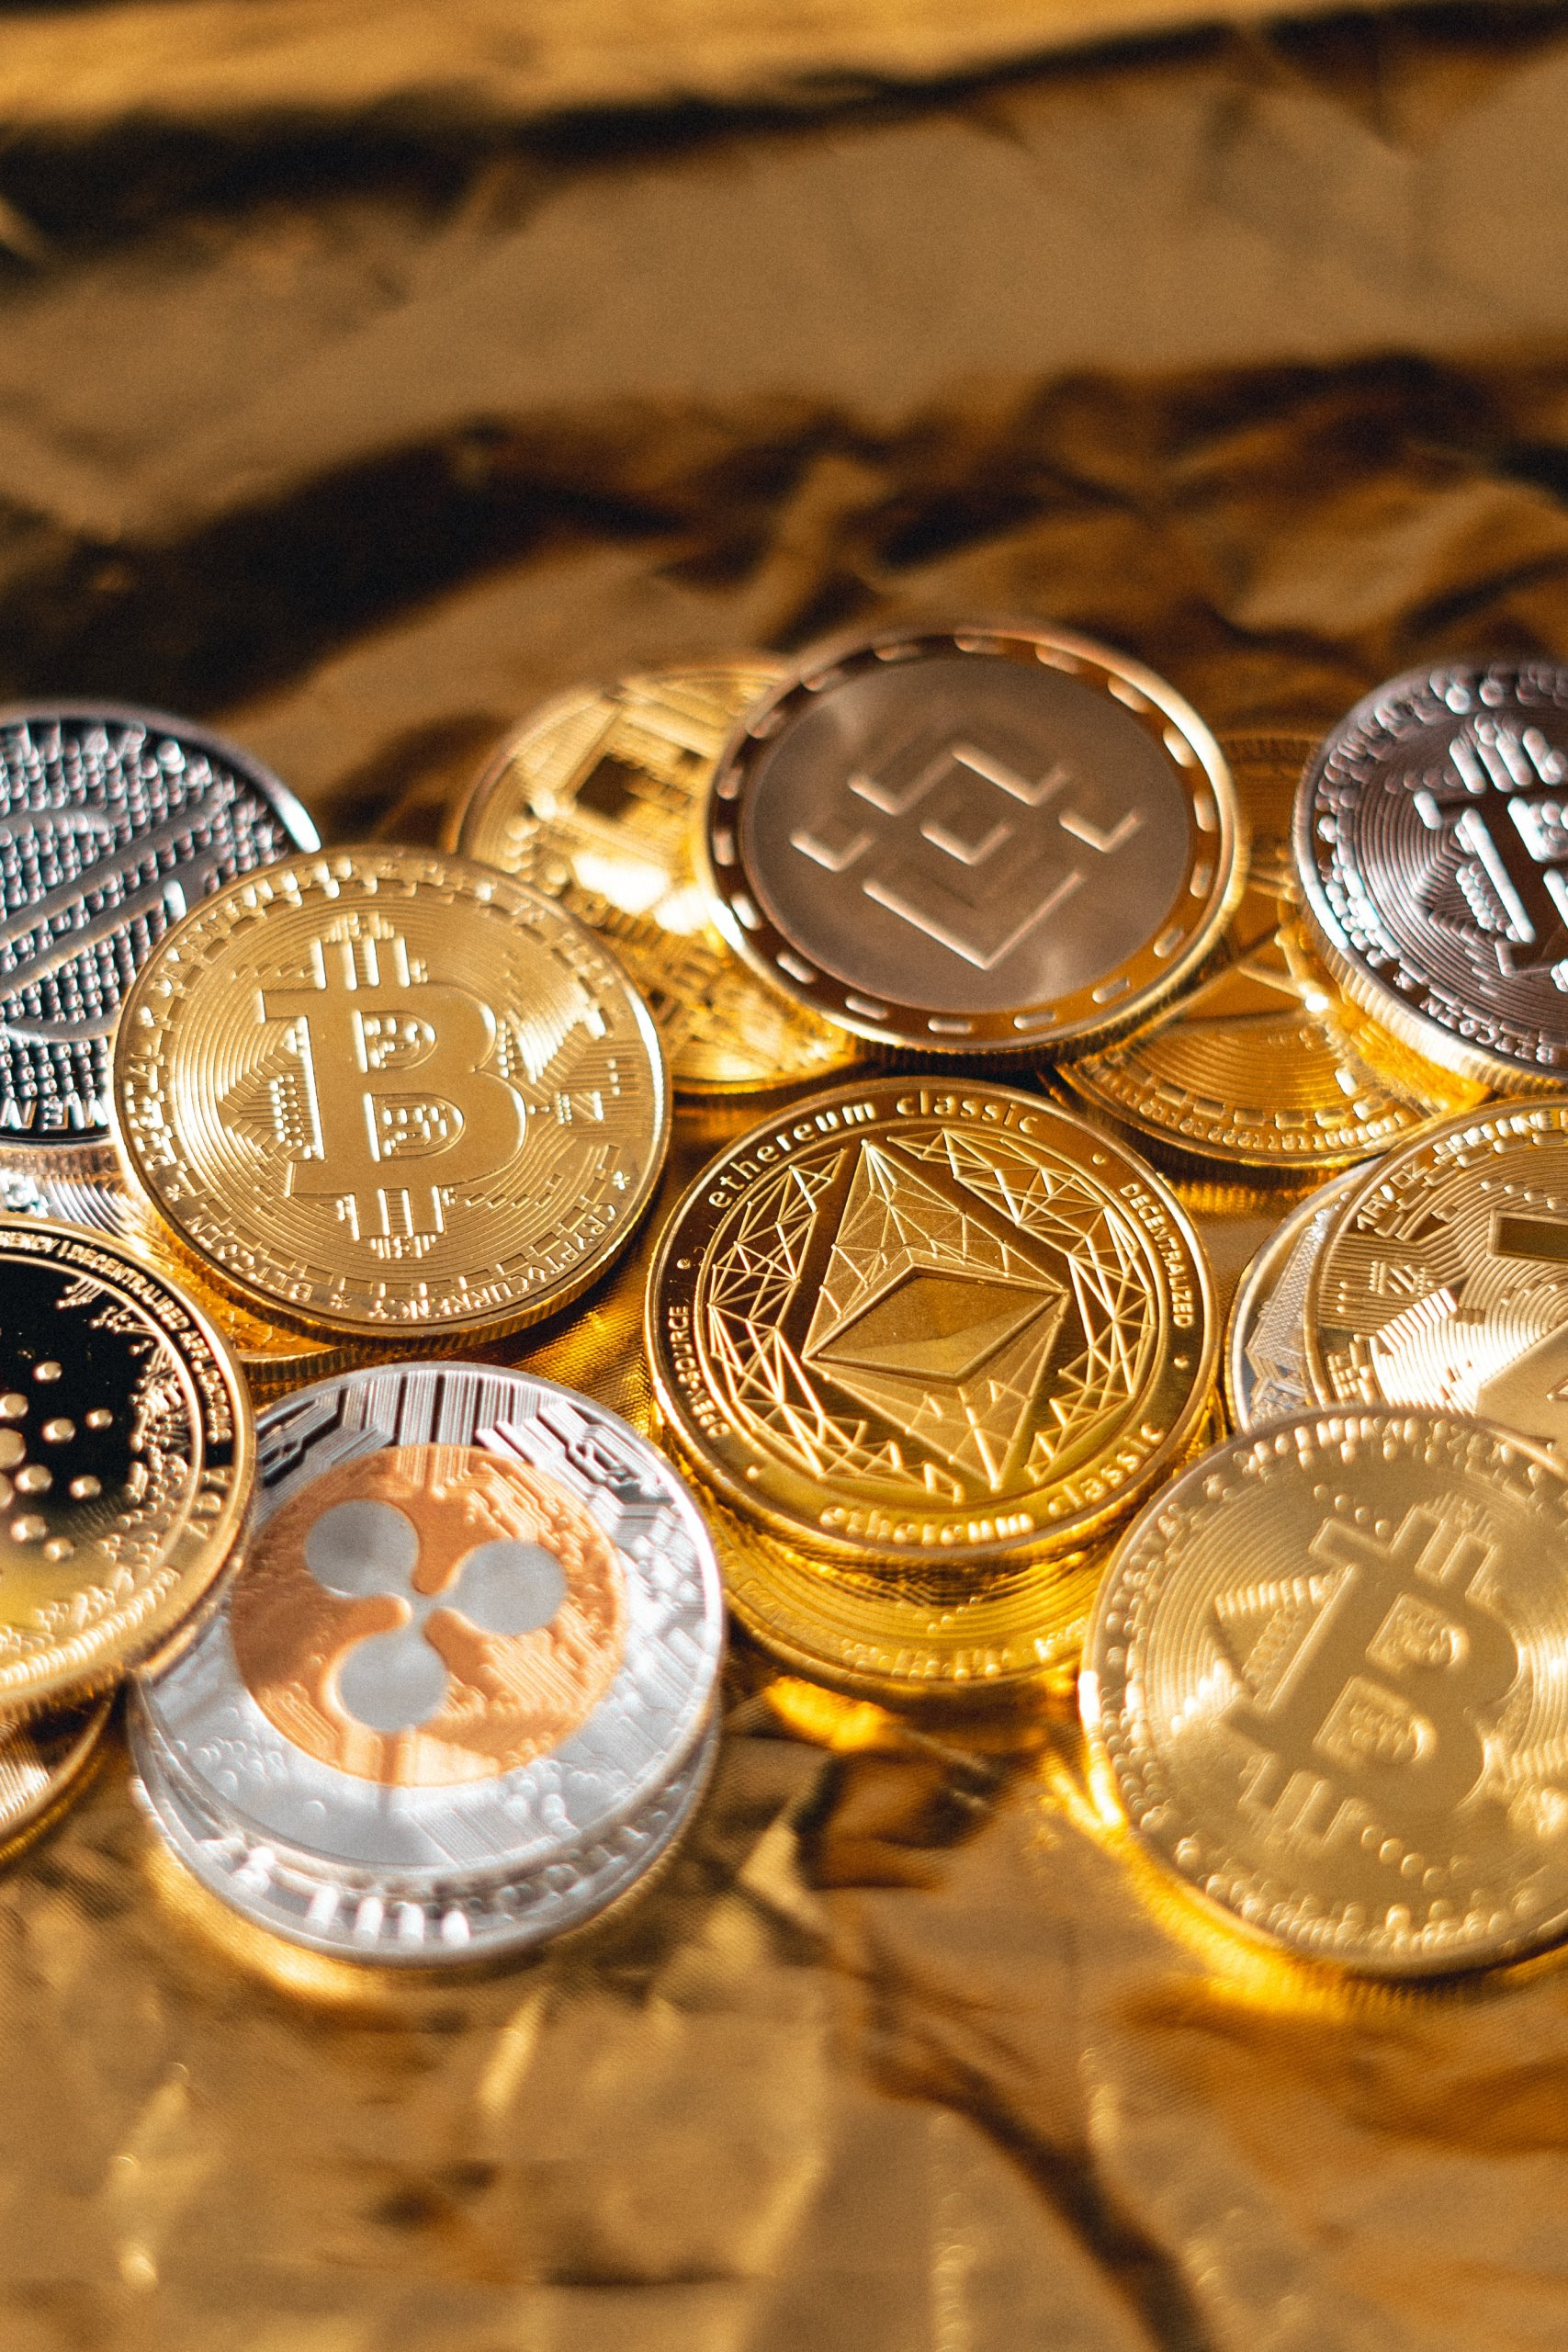 Crypto prices could be volatile over the weekend and taking off some risk or buying some protection might not hurt